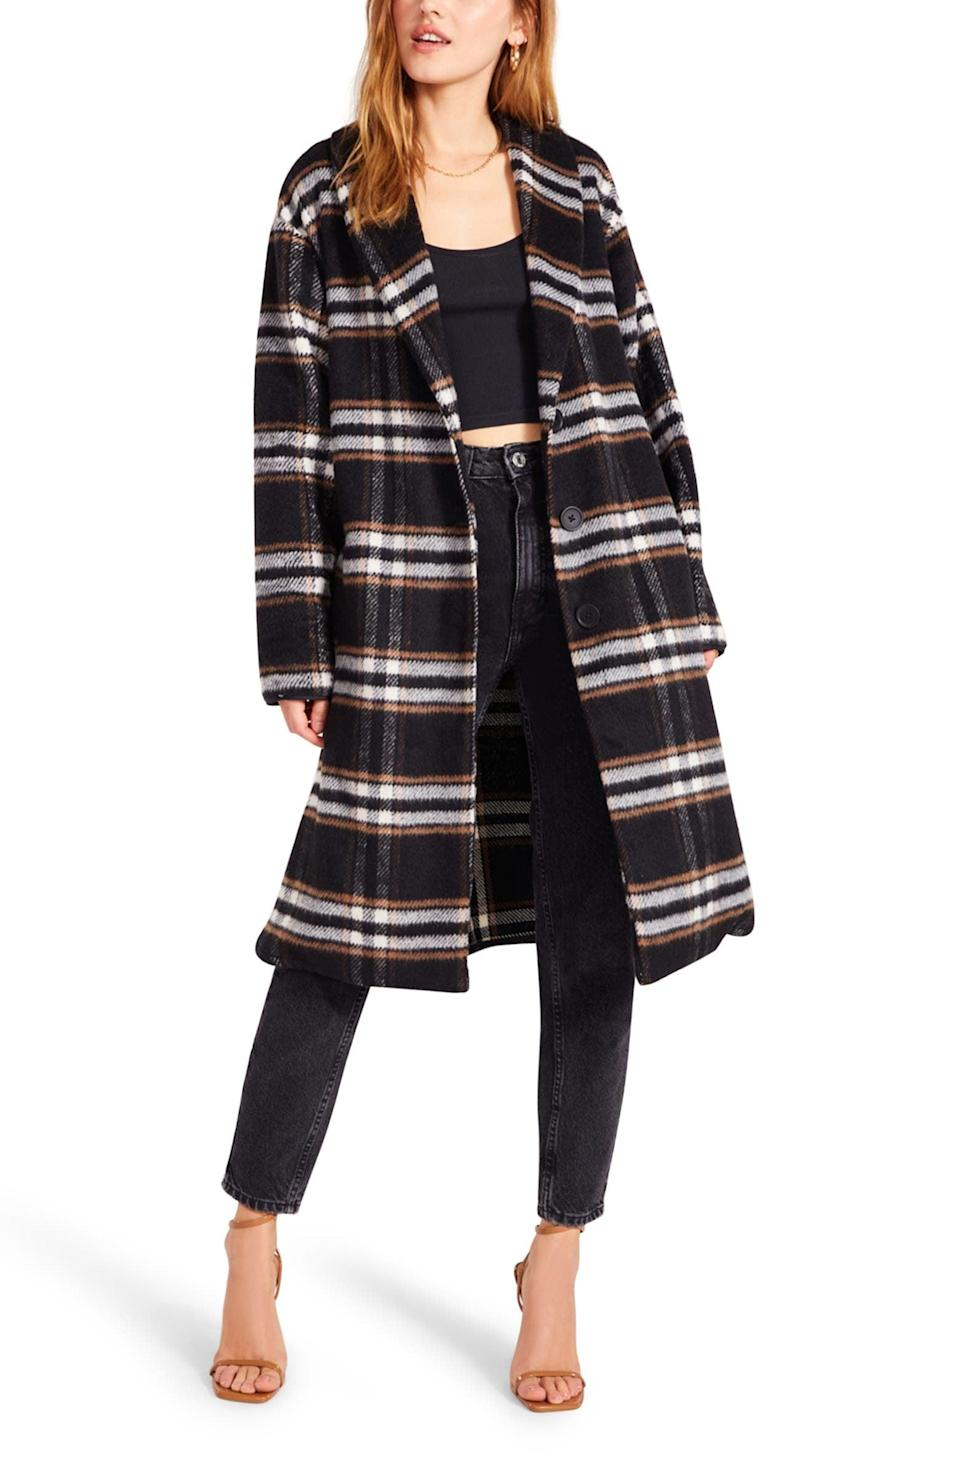 """<p>""""Long walks down the street for a hot chocolate or a PSL with extra cinnamon would be so much cozier in this <span>BB Dakota by Steve Madden Shawl Good Plaid Longline Coat</span> ($139). Perfect for layering, the dark plaid pattern makes it easy to pair with virtually any outfit - and it has pockets!"""" - CV</p>"""